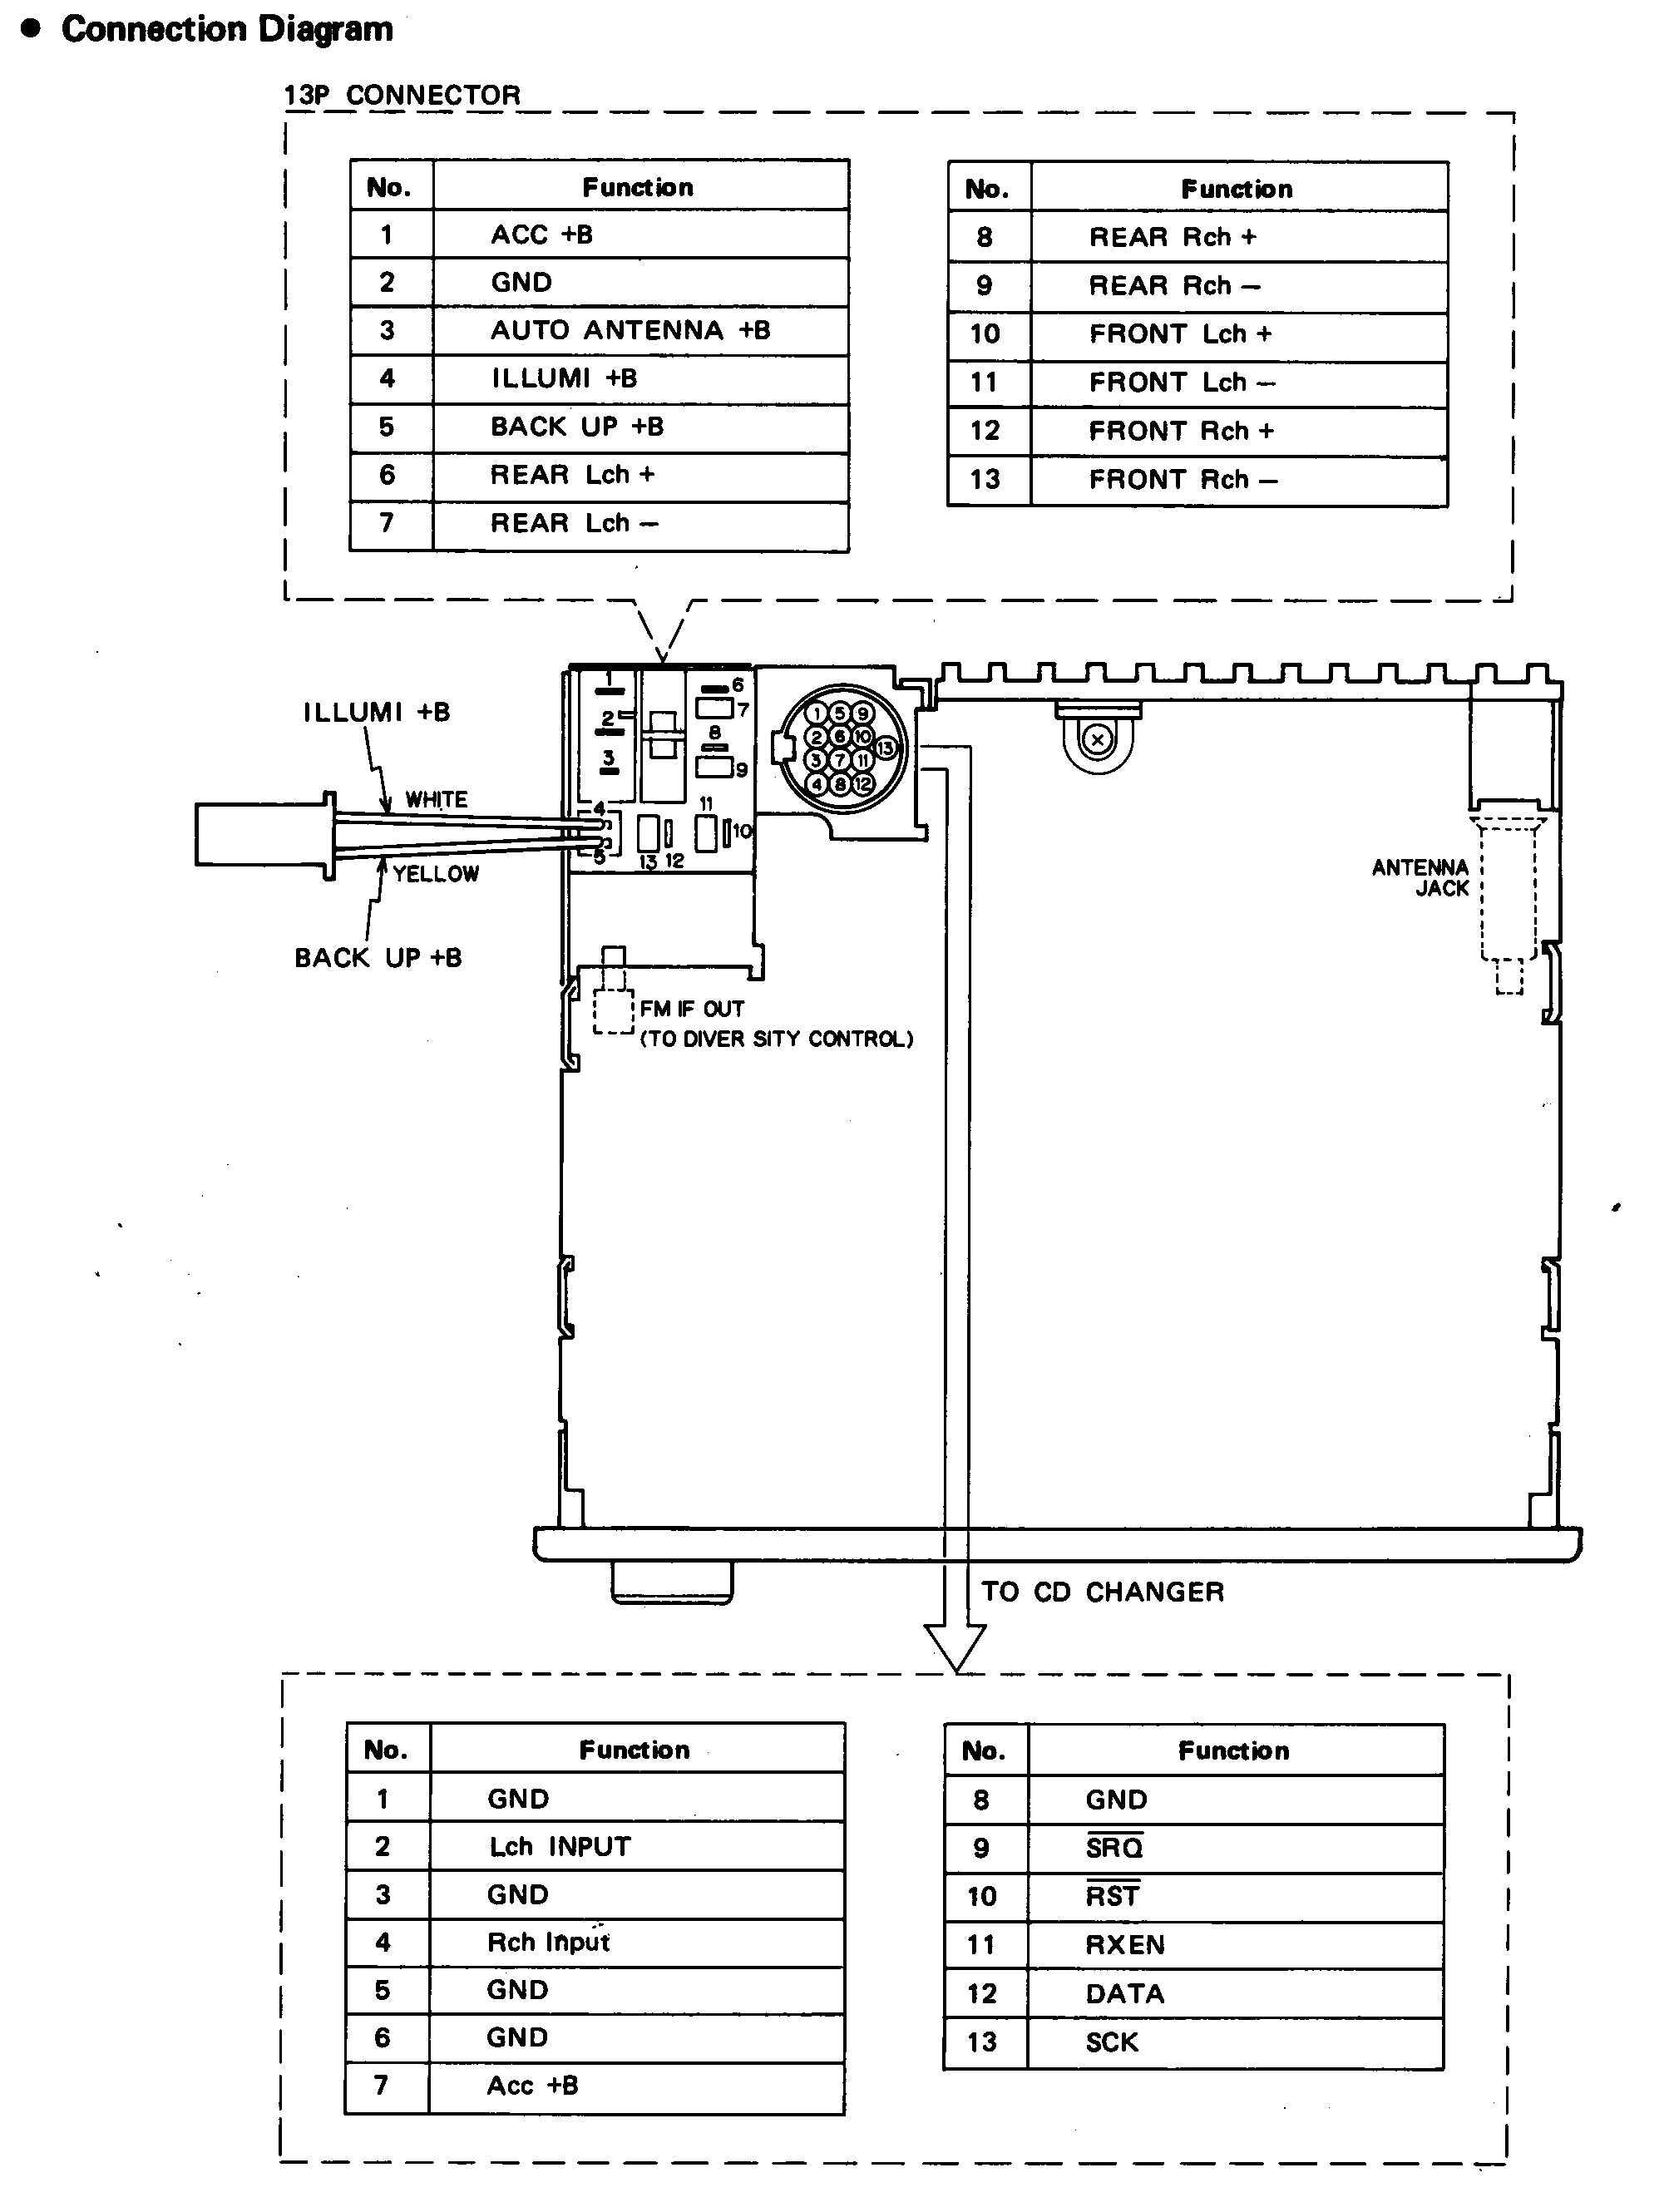 WireHarnessBMW121701 1996 jeep grand cherokee car stereo radio wiring diagram wiring 2002 jeep liberty stereo wiring diagram at soozxer.org